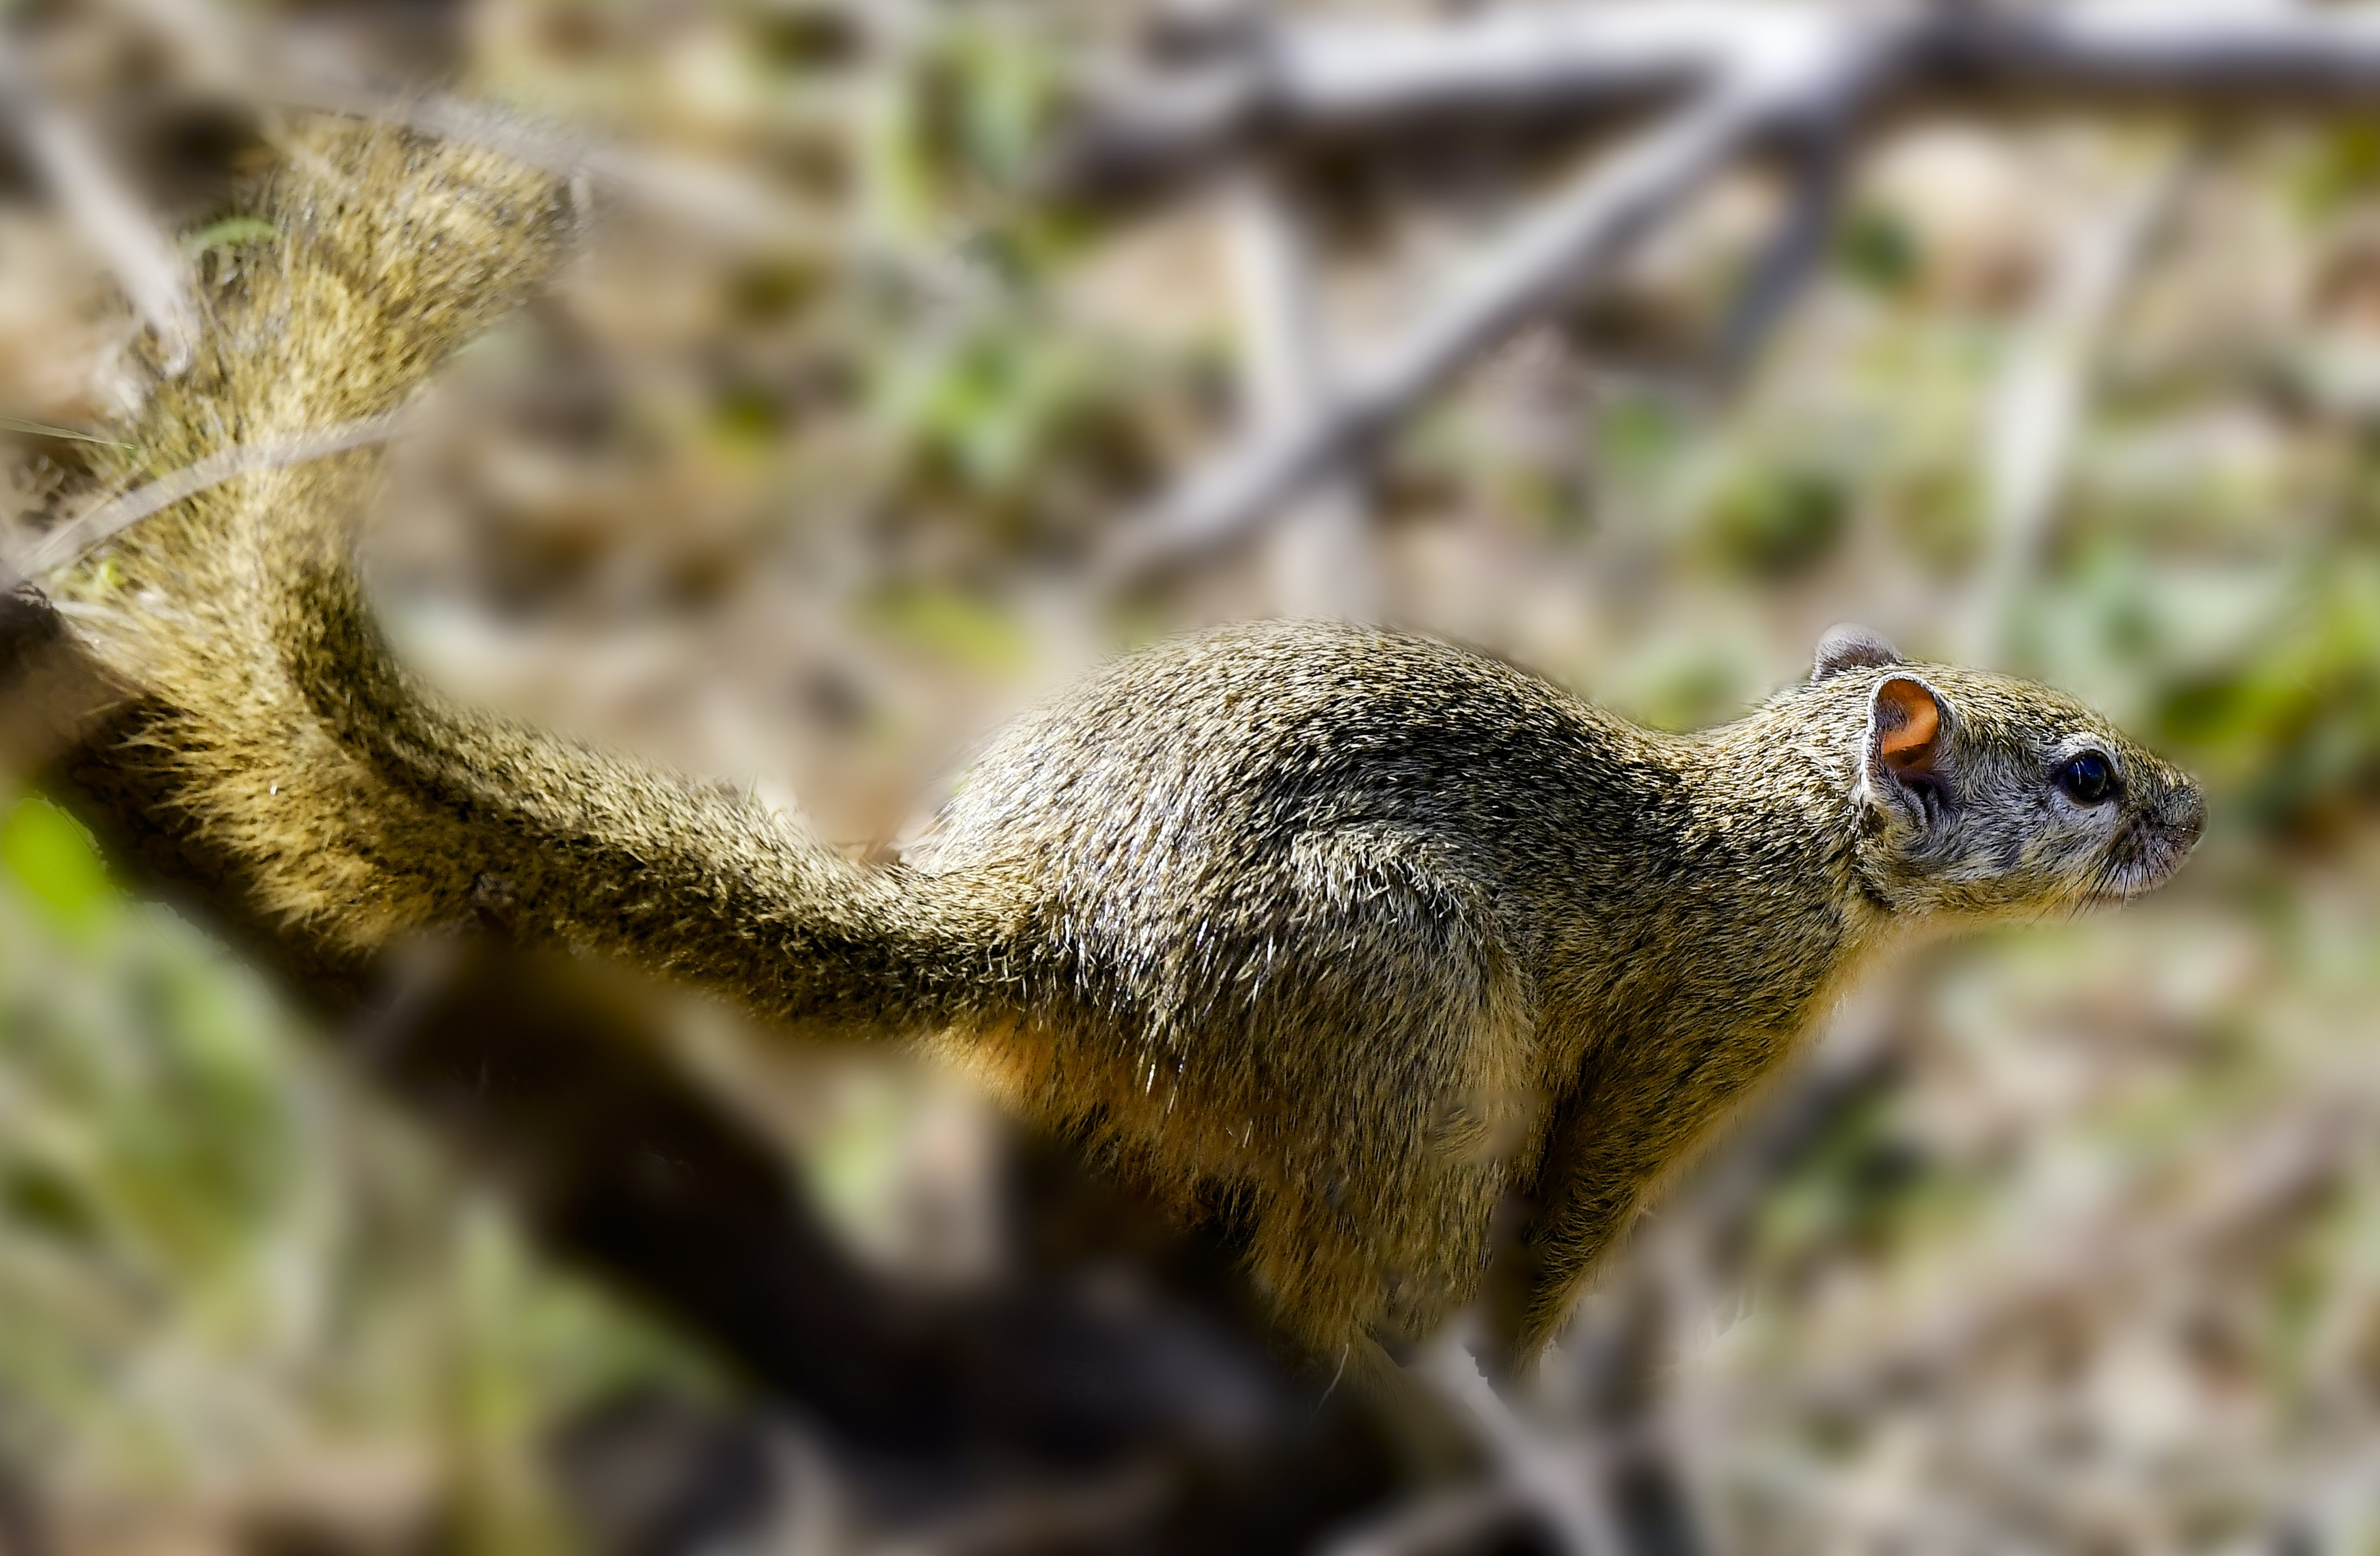 Close Up Photography of Brown Squirrel